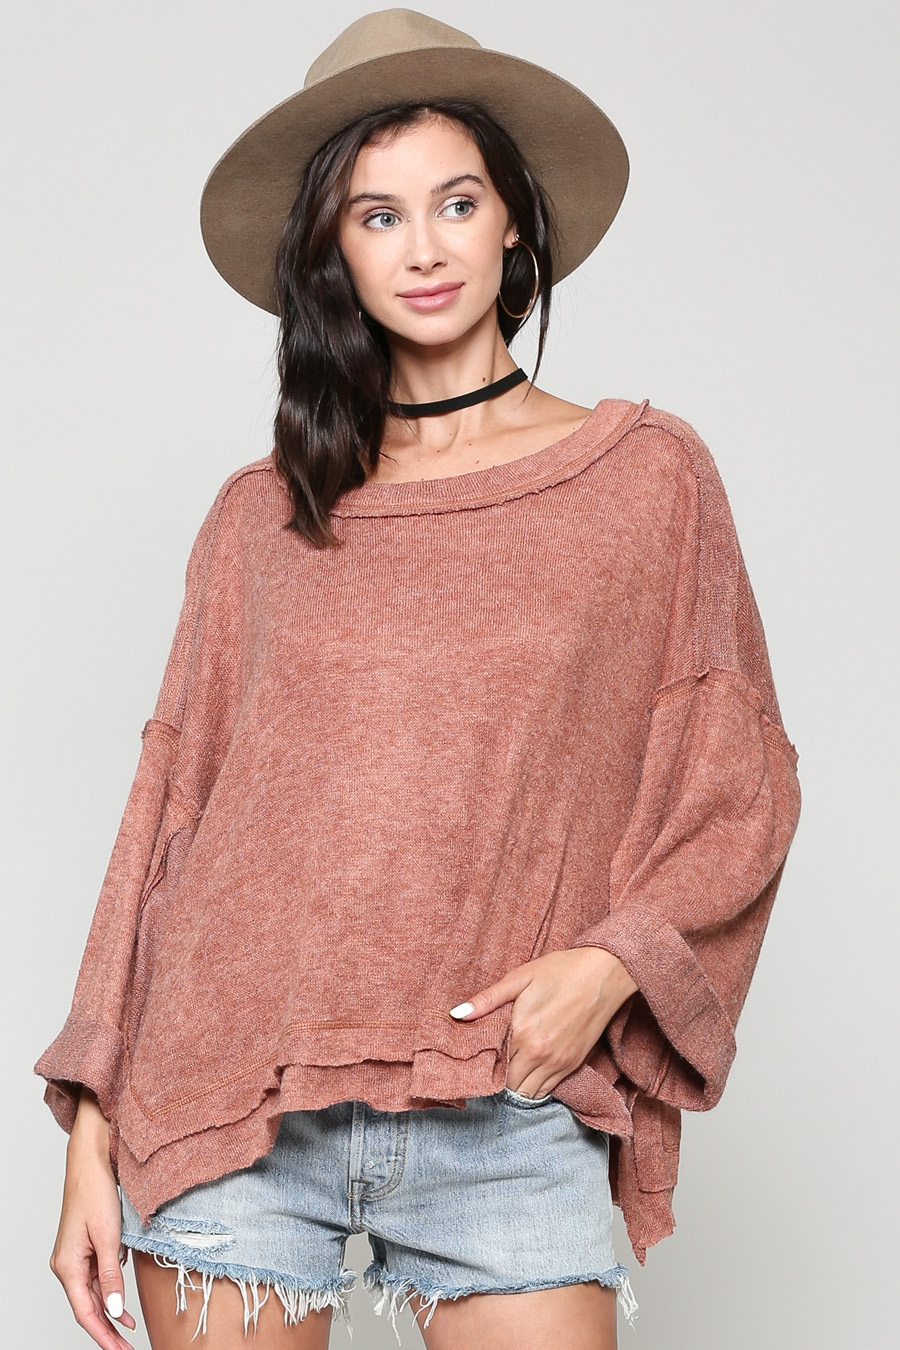 LOOSE FIT WIDE NECK TOP - orangeshine.com